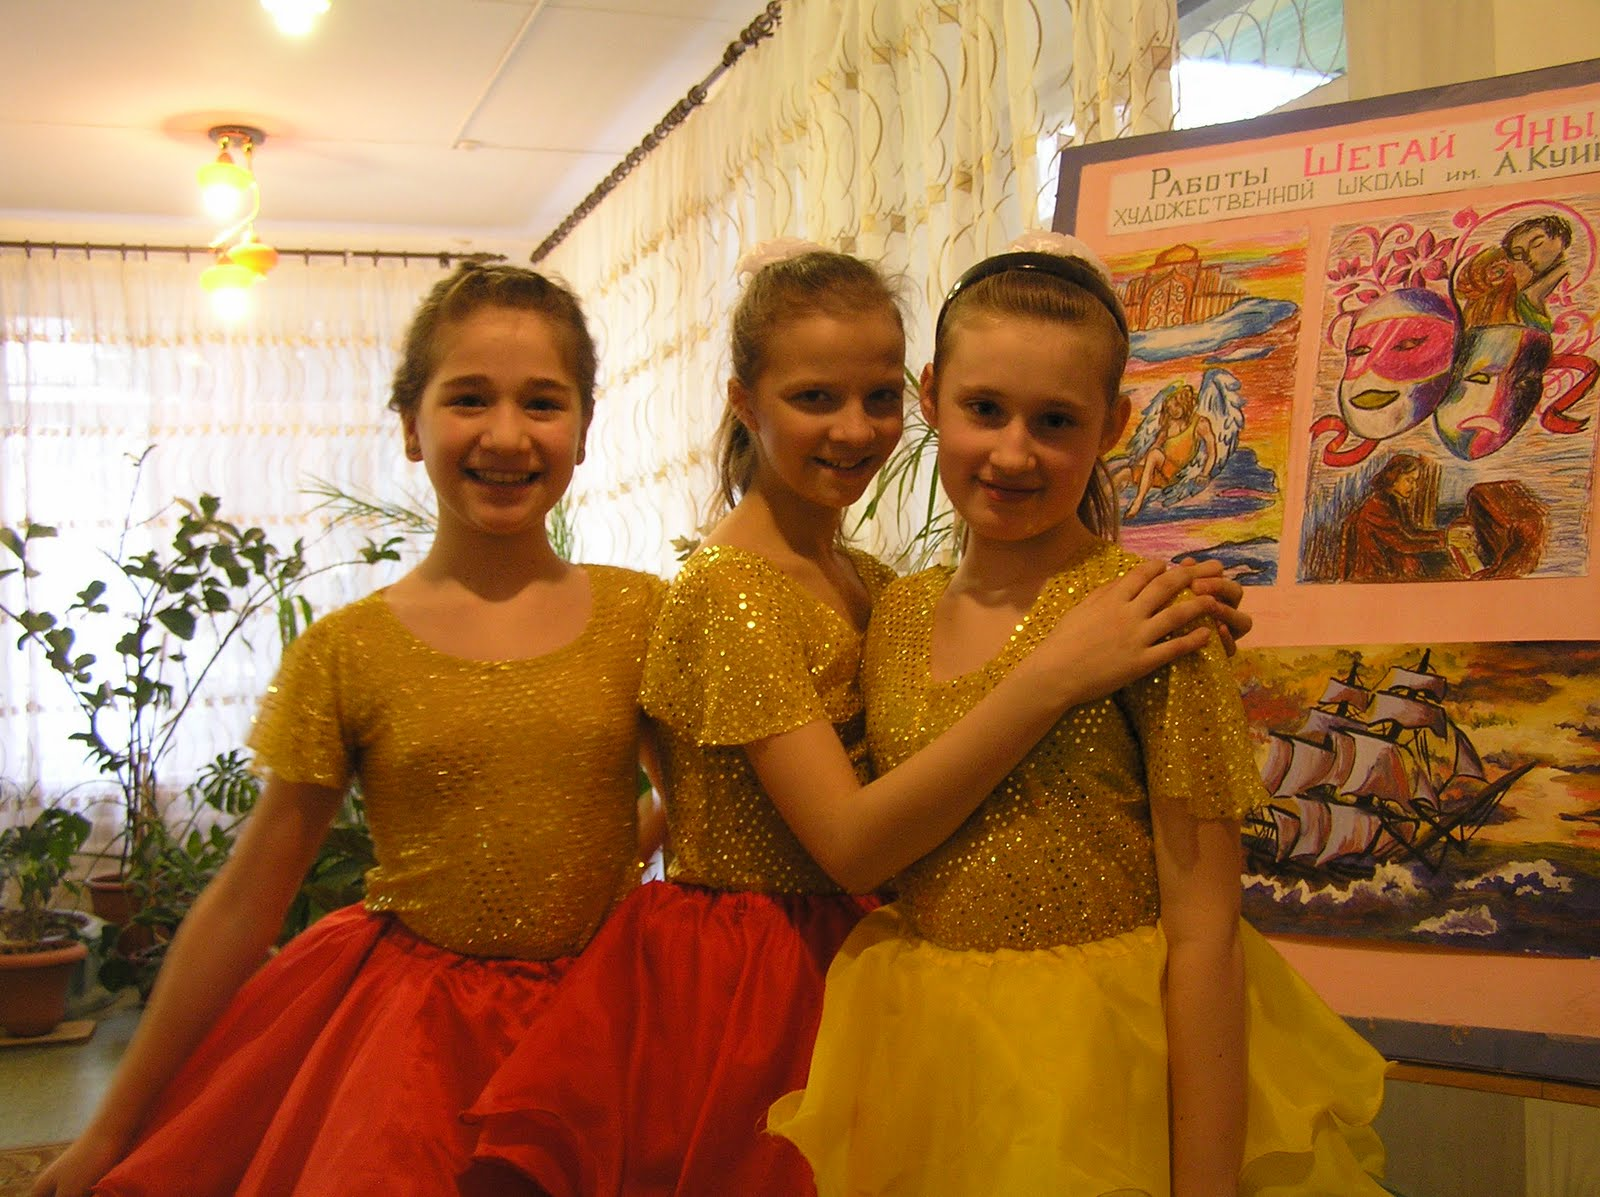 Angels From Ukraine http://echolsinukraine.blogspot.com/2011/04/angel-party.html